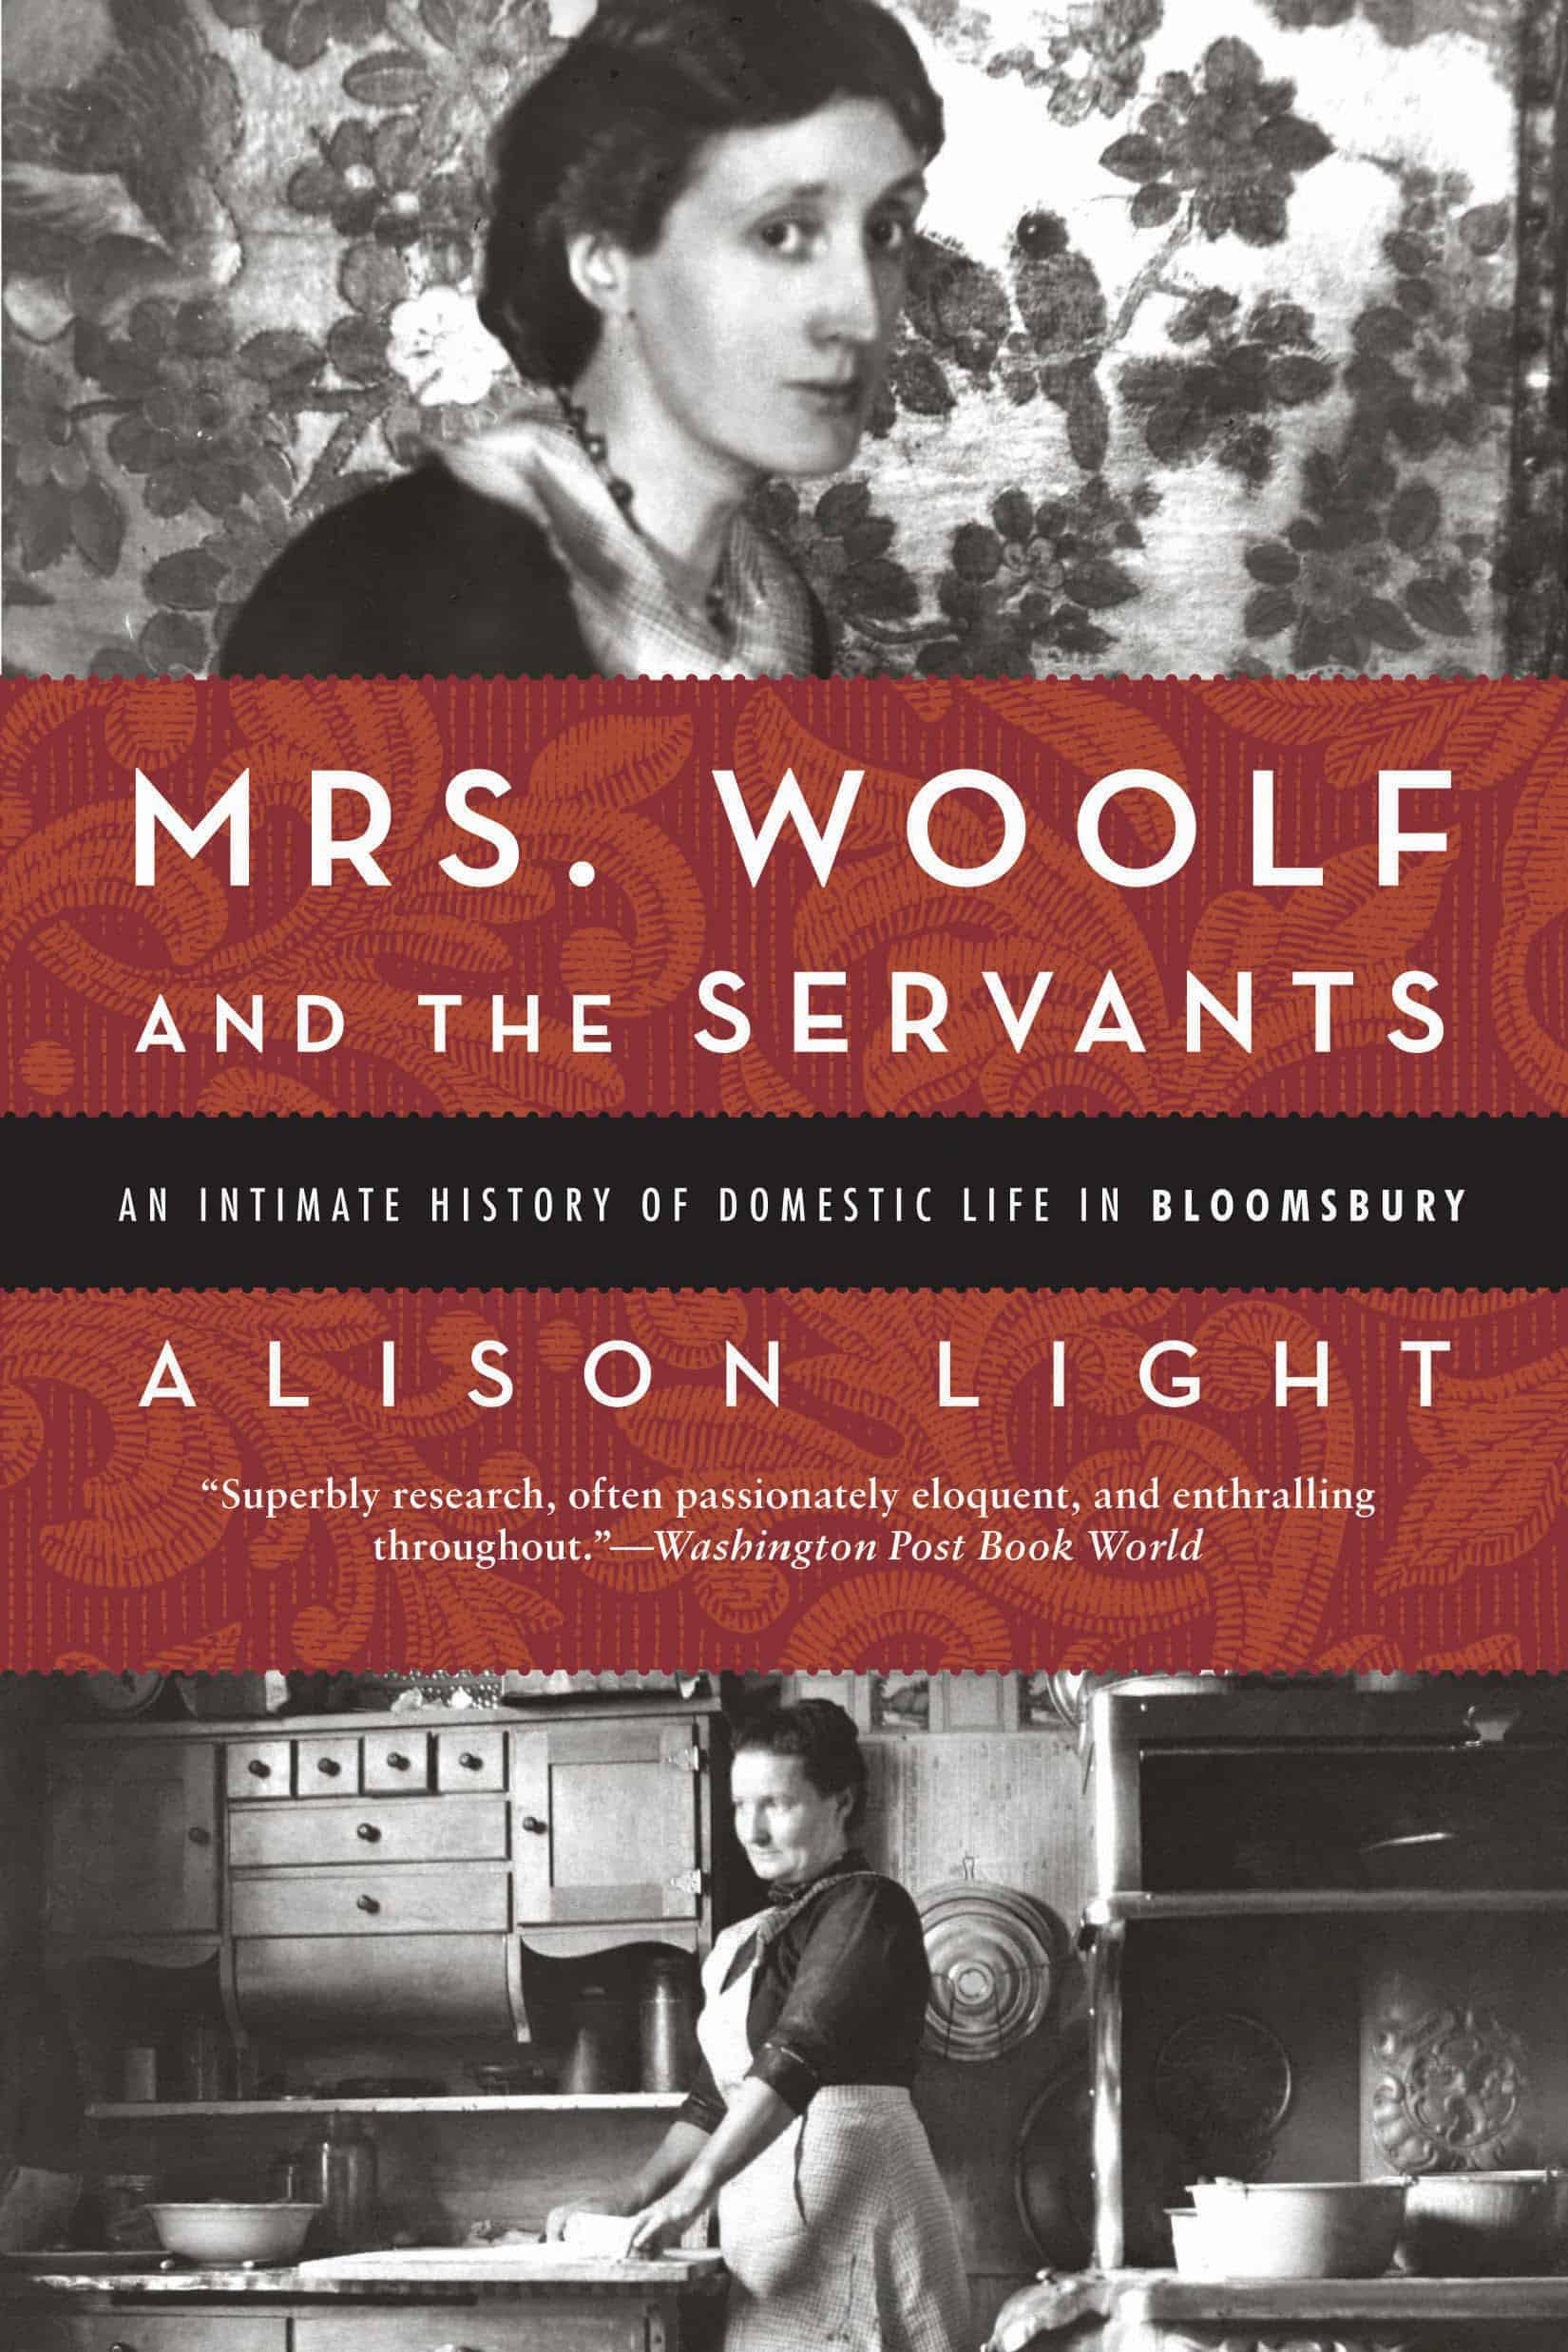 Mrs. Woolf and the Servants An Intimate History of Domestic Life in Bloomsbury - Mrs. Woolf and the Servants: An Intimate History of Domestic Life in Bloomsbury